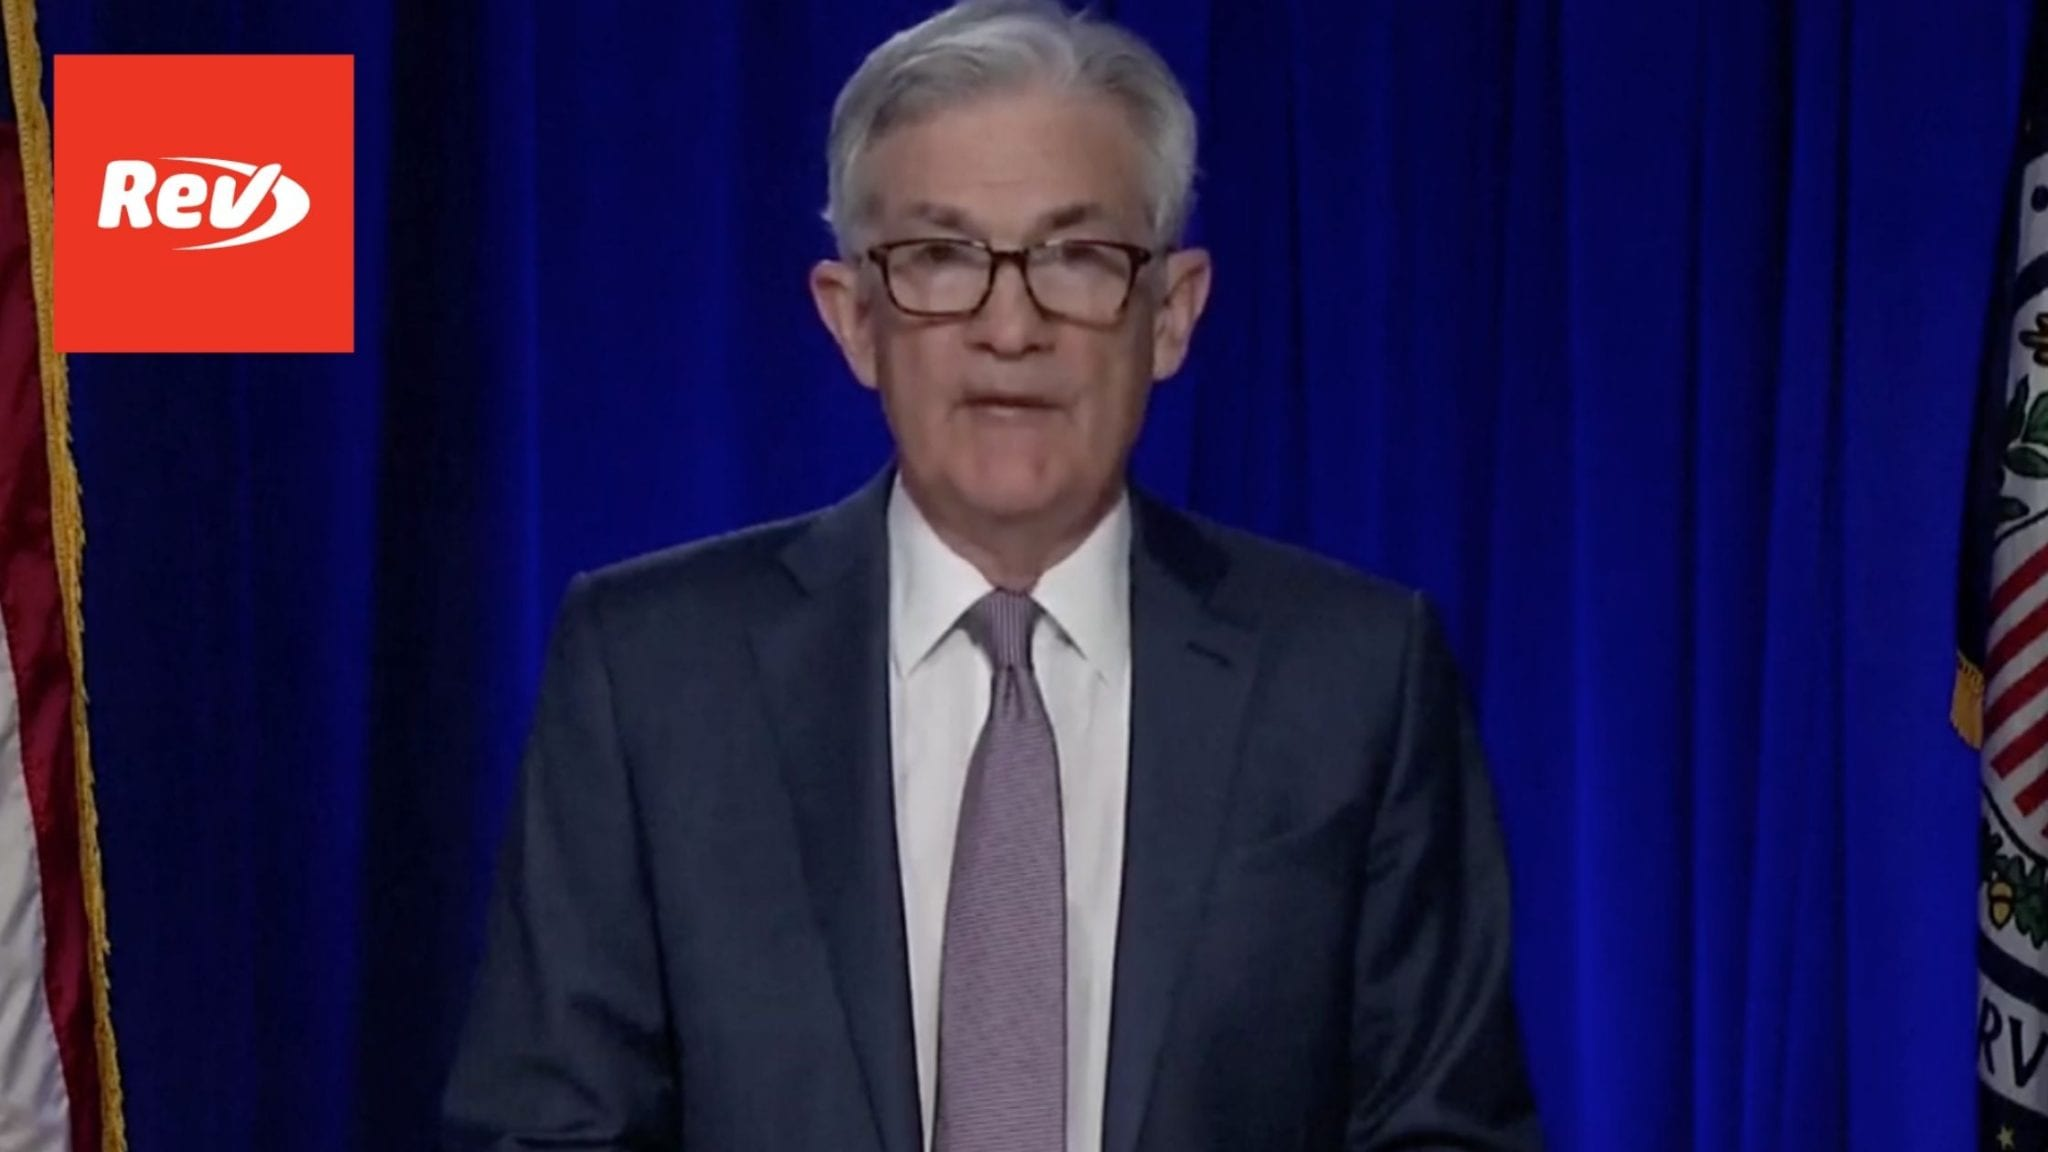 Fed Chair Jerome Powell Press Conference Transcript January 27: Market Update